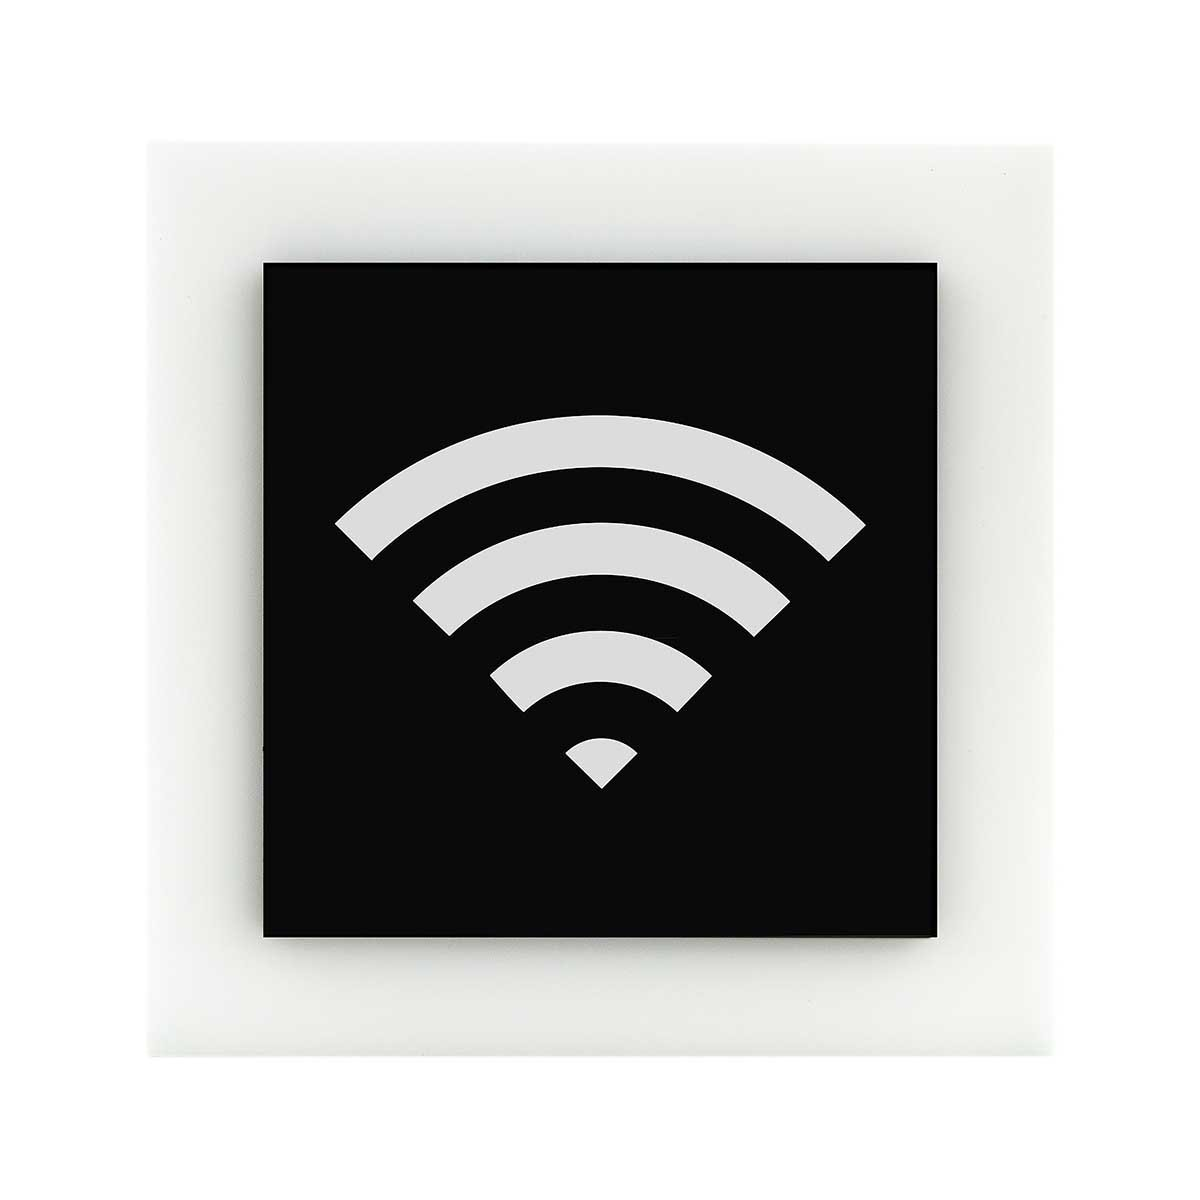 Acrylic Wi-Fi Sign for Waiting Room Information signs black/white symbol Bsign